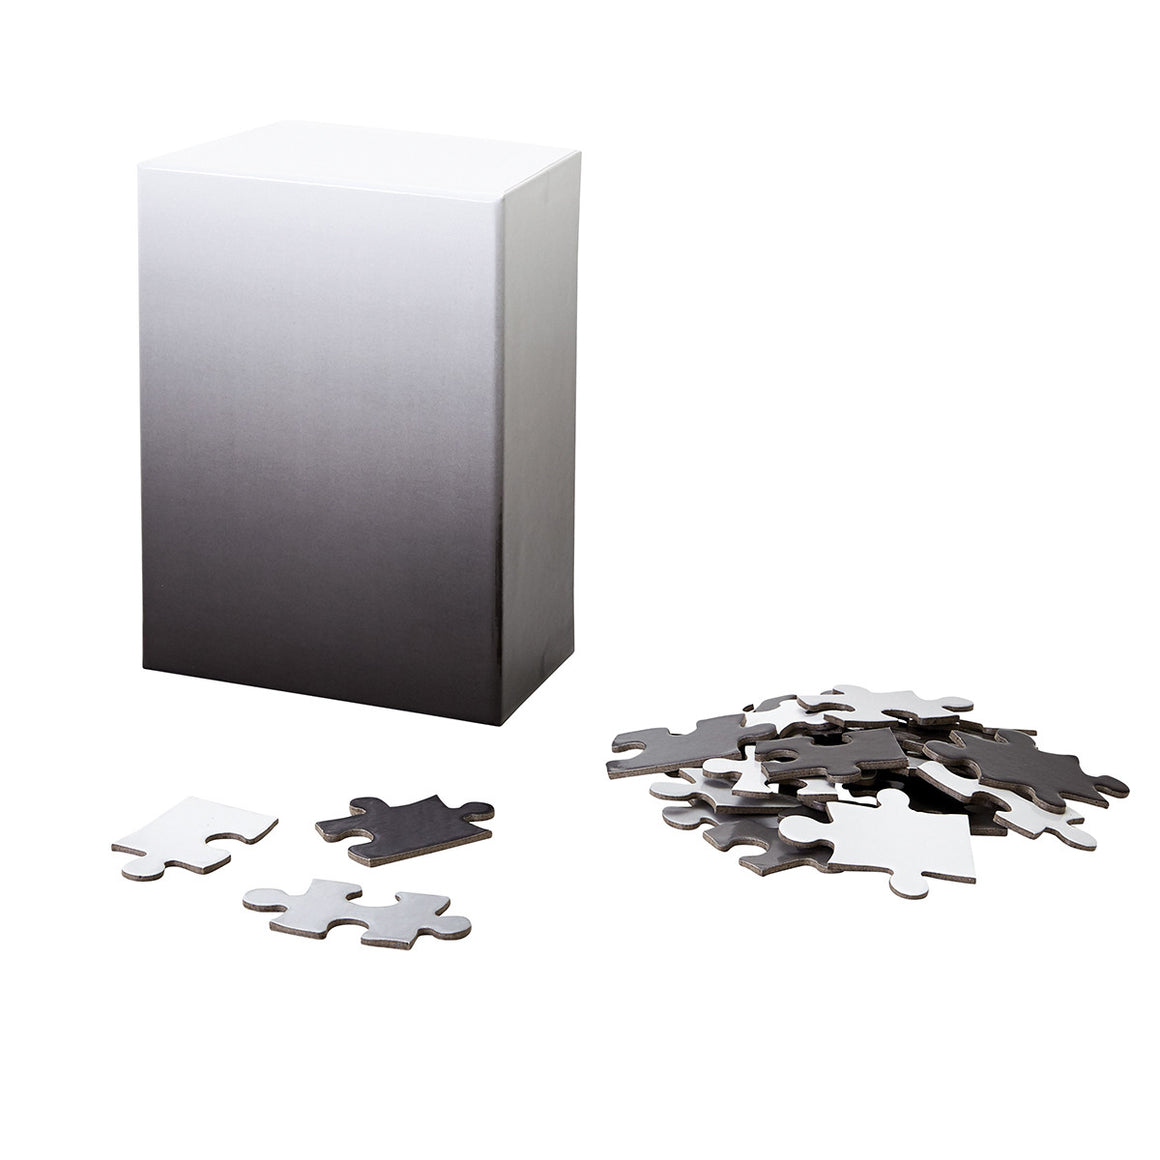 A puzzle in a tonal gradient from black to grey to white. The image shows the puzzle box next to a pile of assorted puzzle pieces.